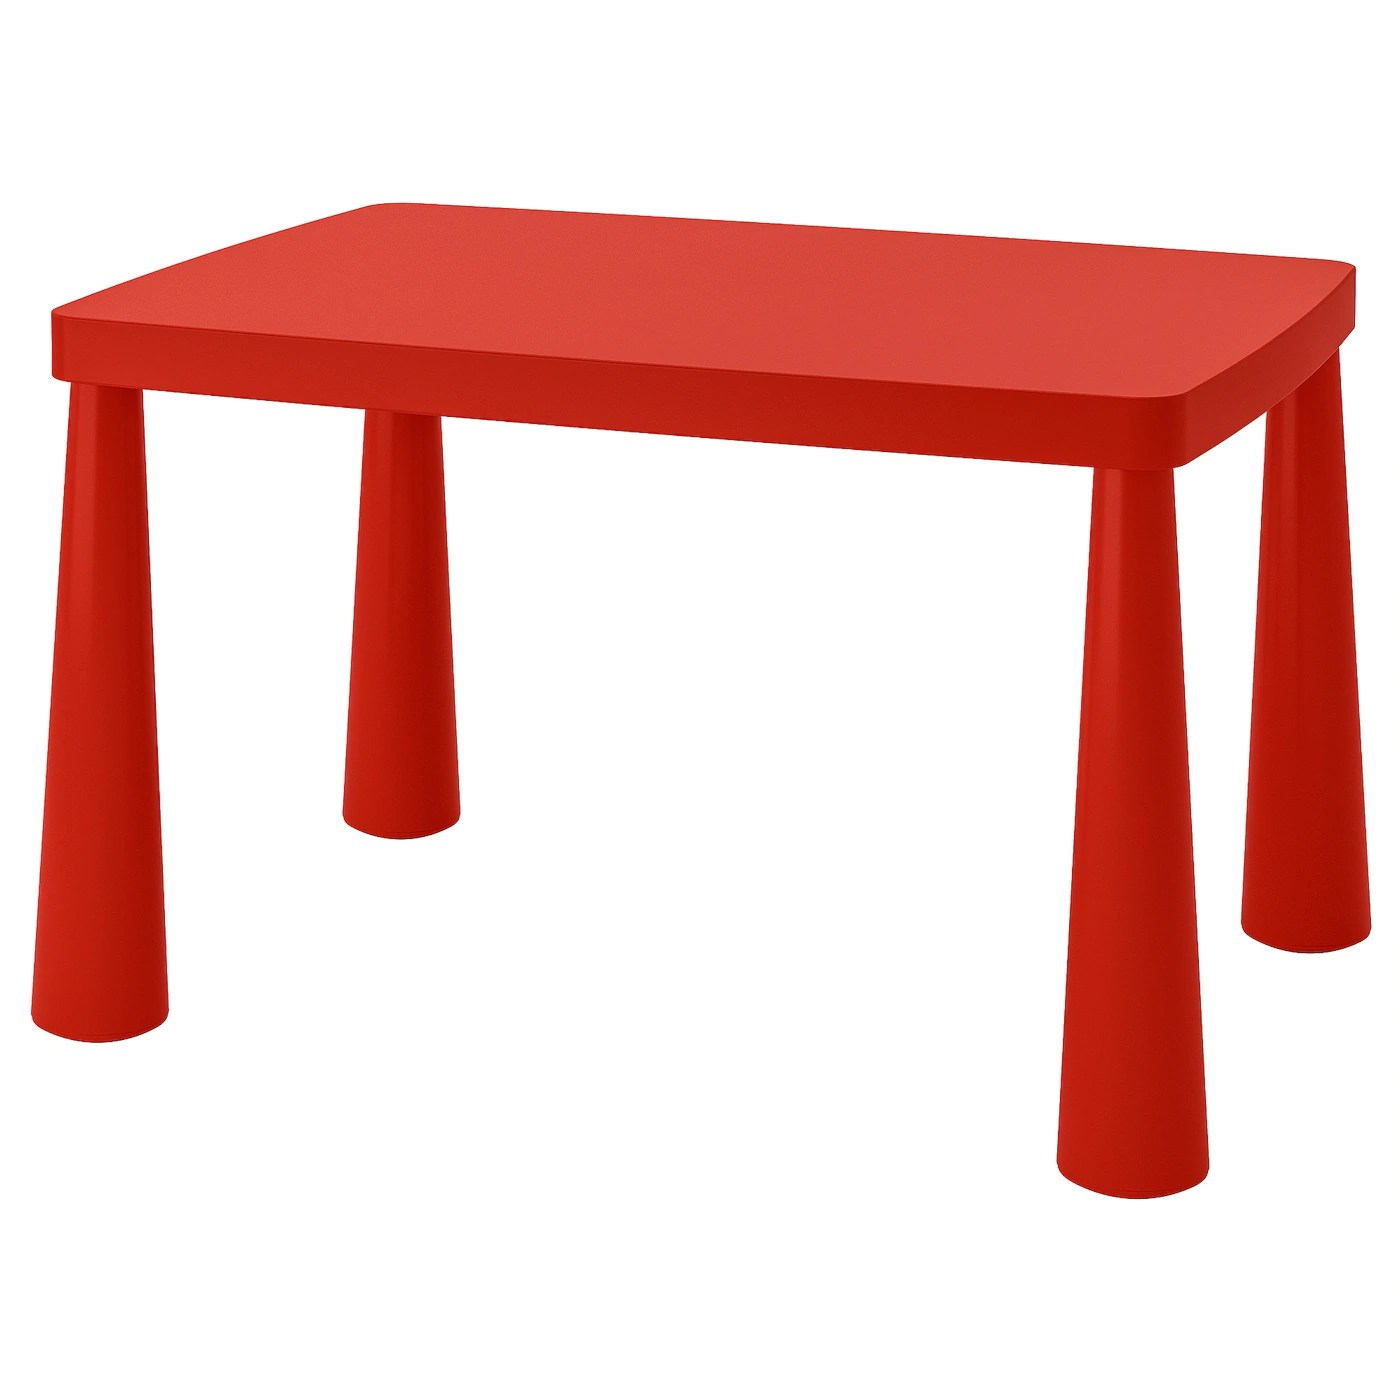 Mammut Children S Table Indoor Outdoor Red 30 3 8x21 5 8 Ikea